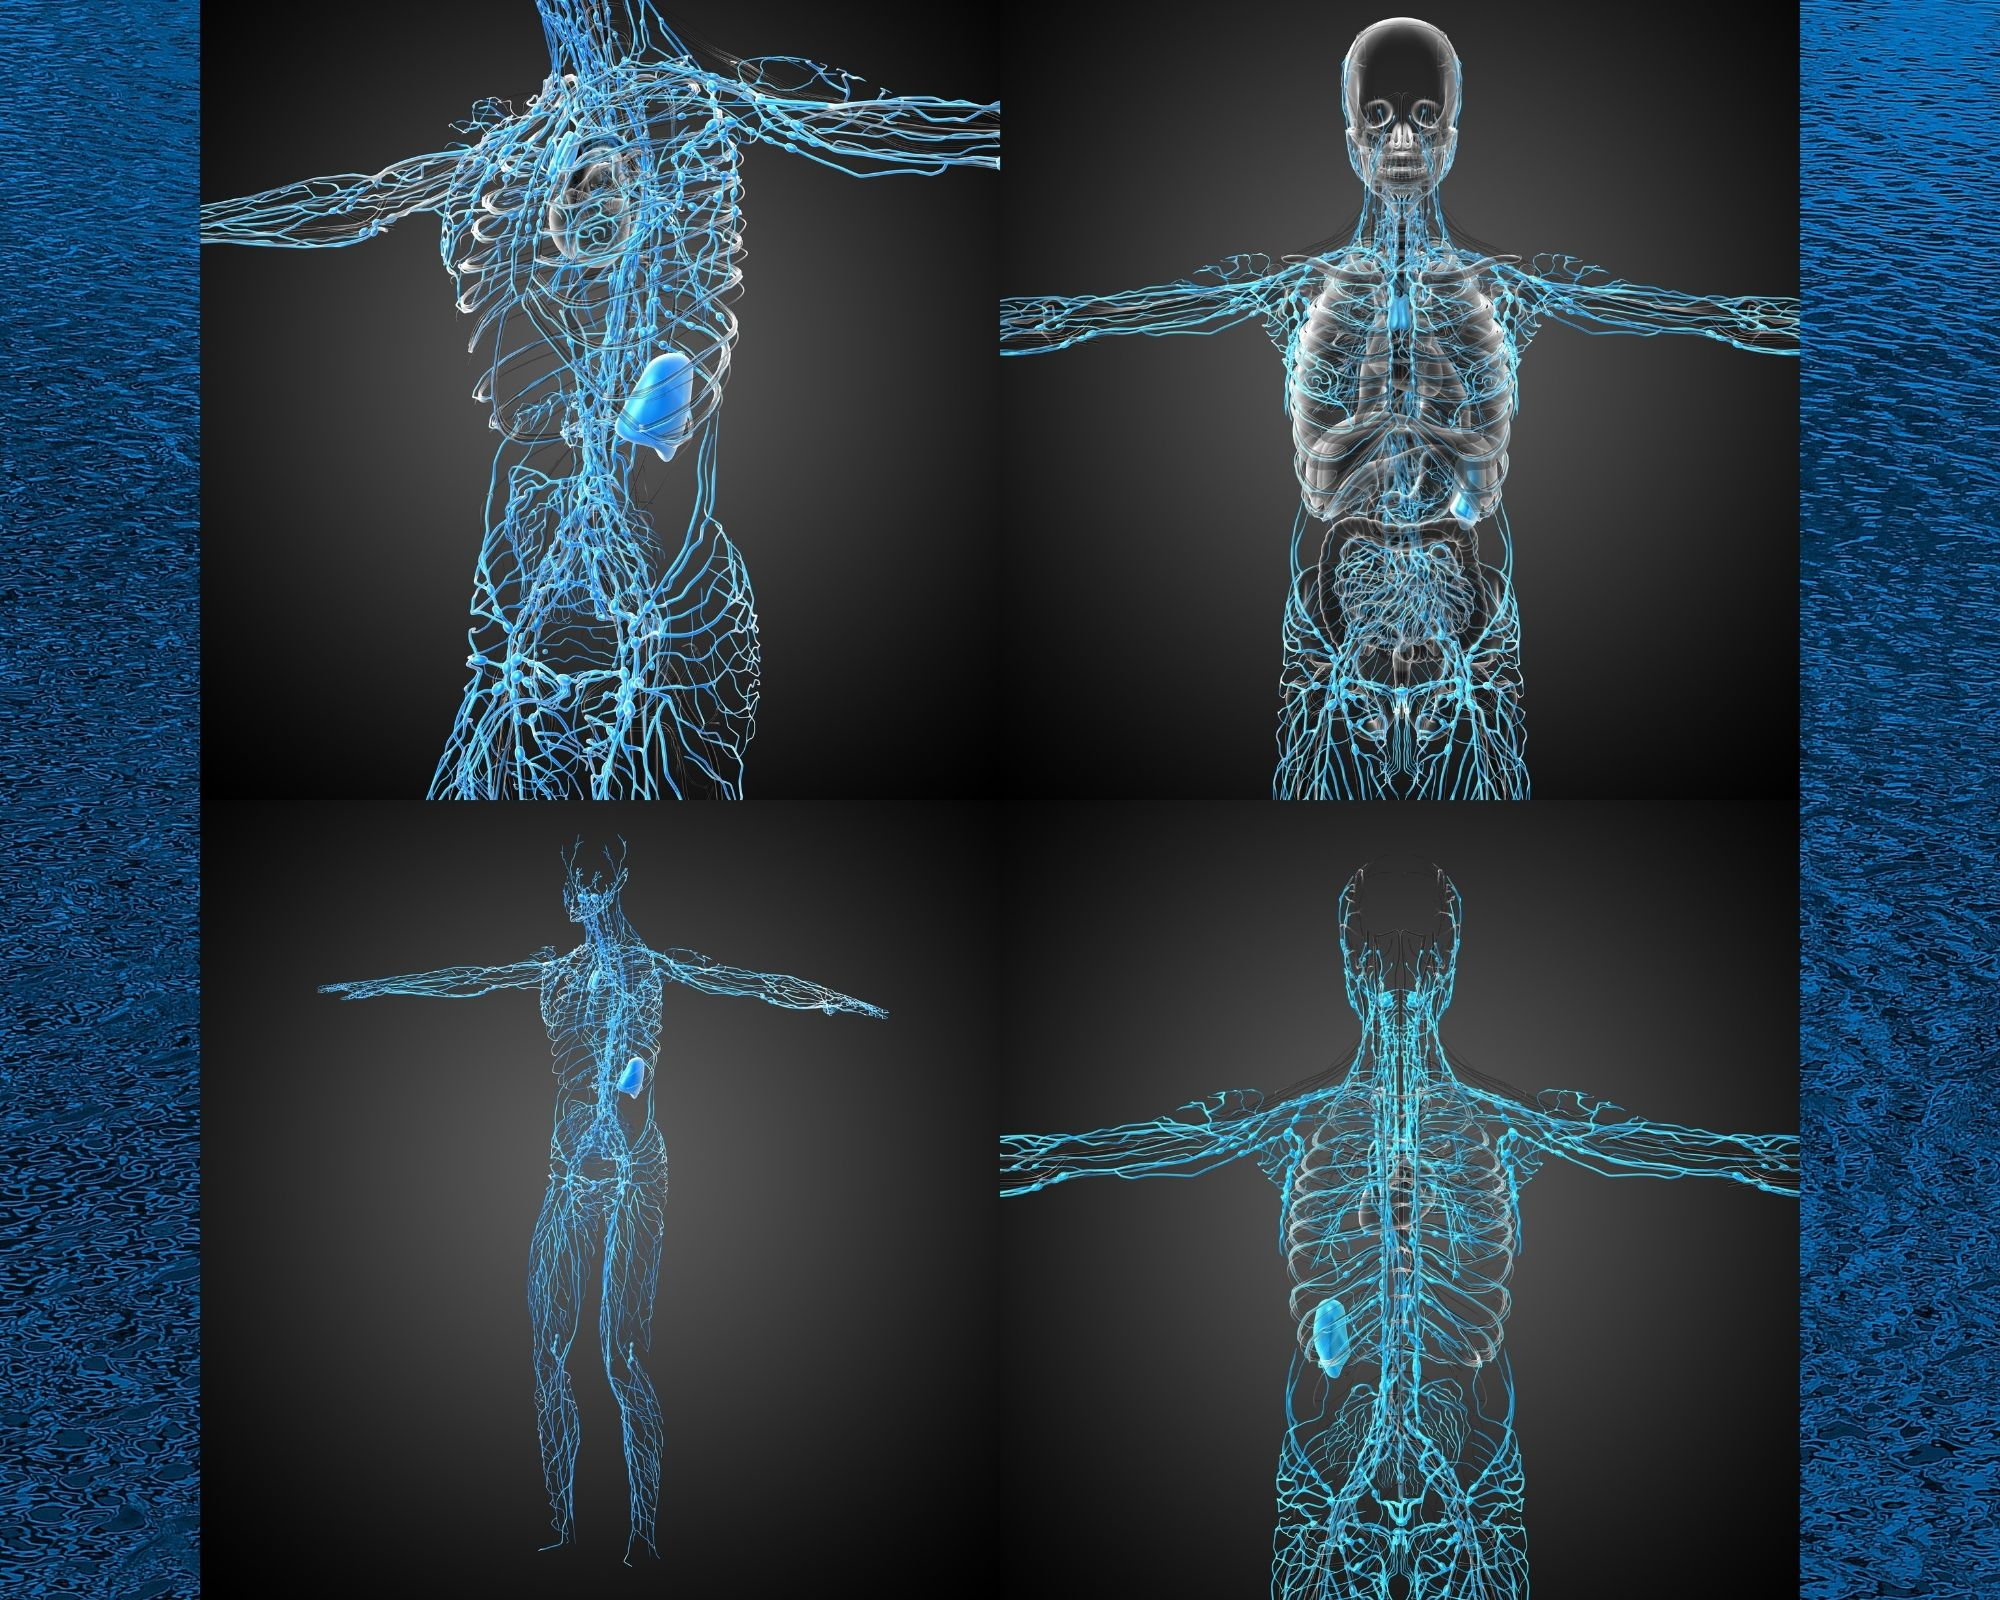 Images of the lymphatic system throughout the body. - just breathe